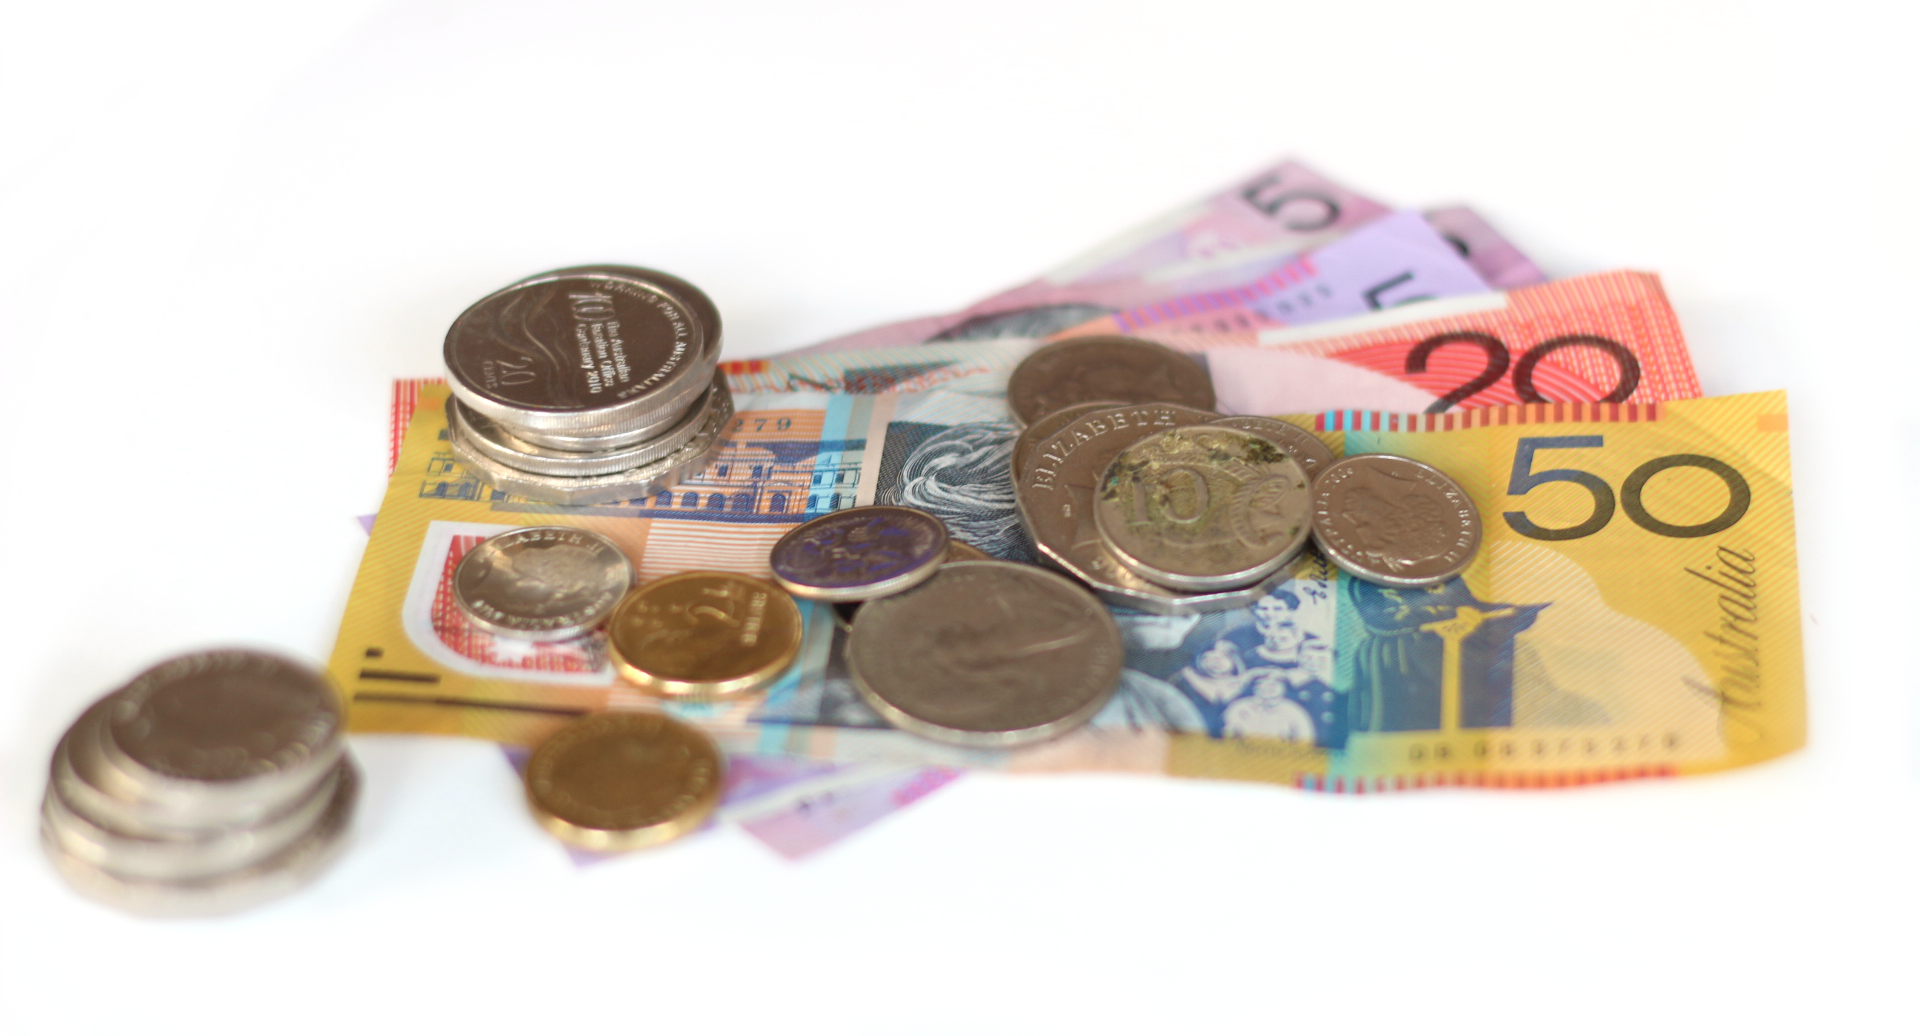 Recuperer Sa Superannuation En Australie Guide Complet